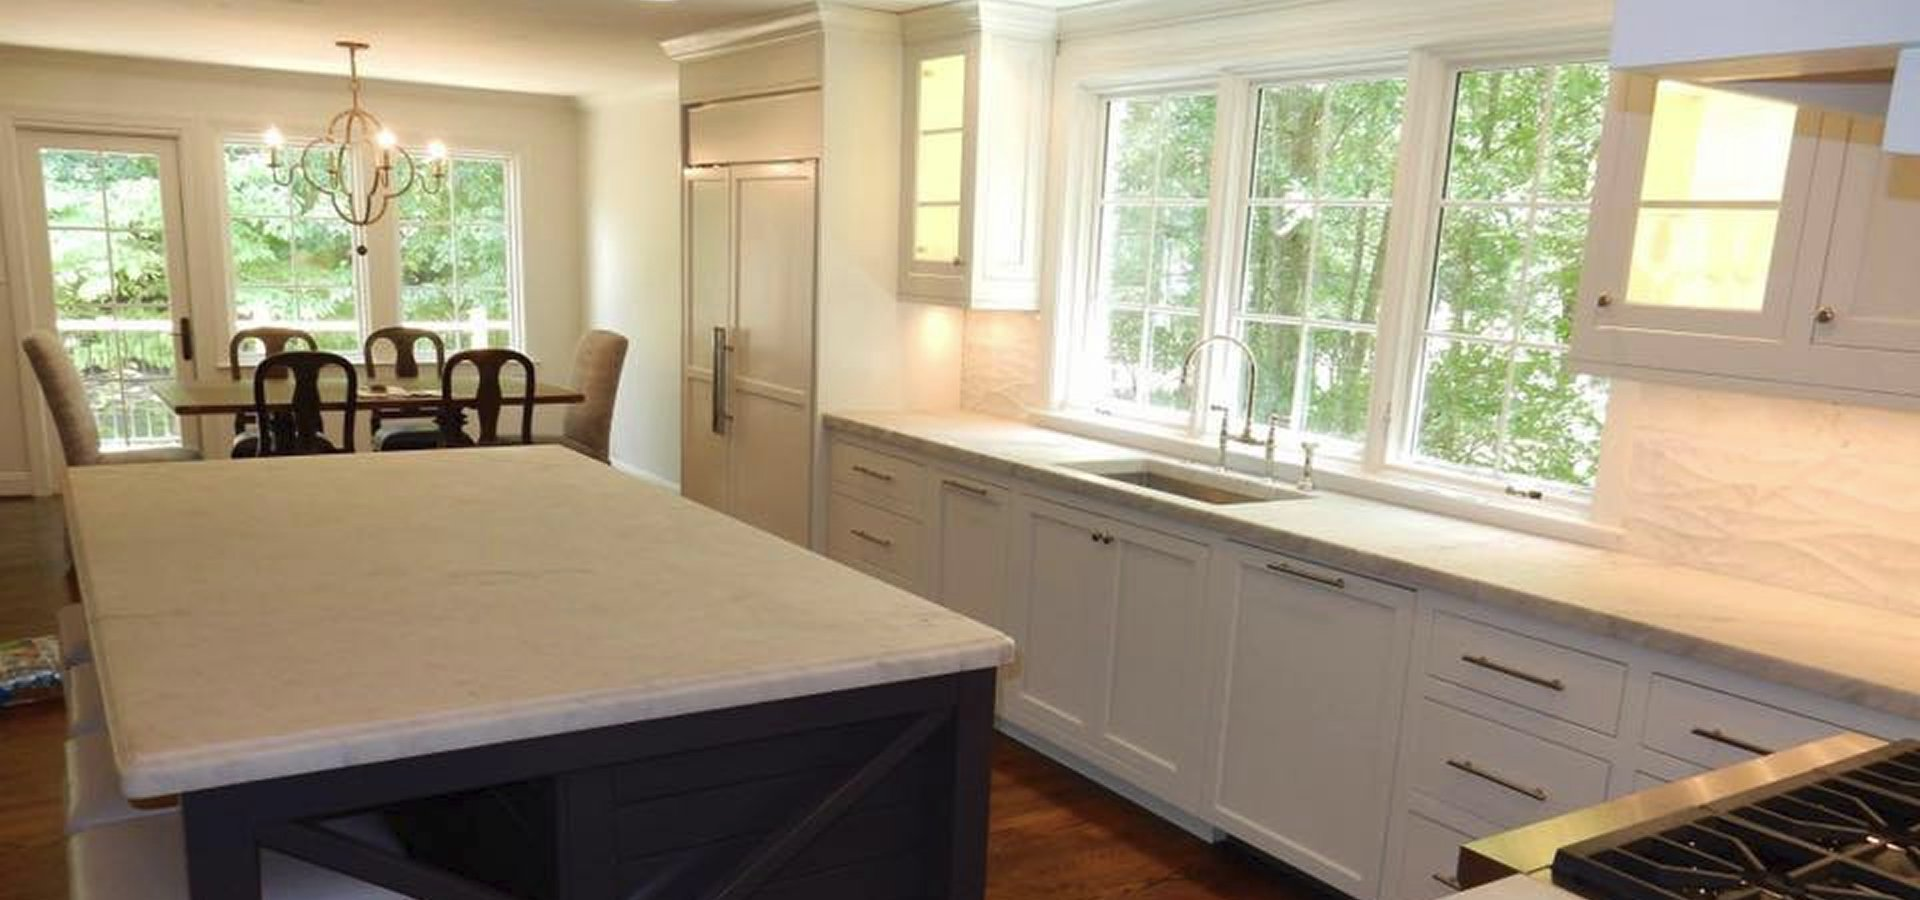 Rts construction home remodeling kitchen remodel for Bathroom builders birmingham